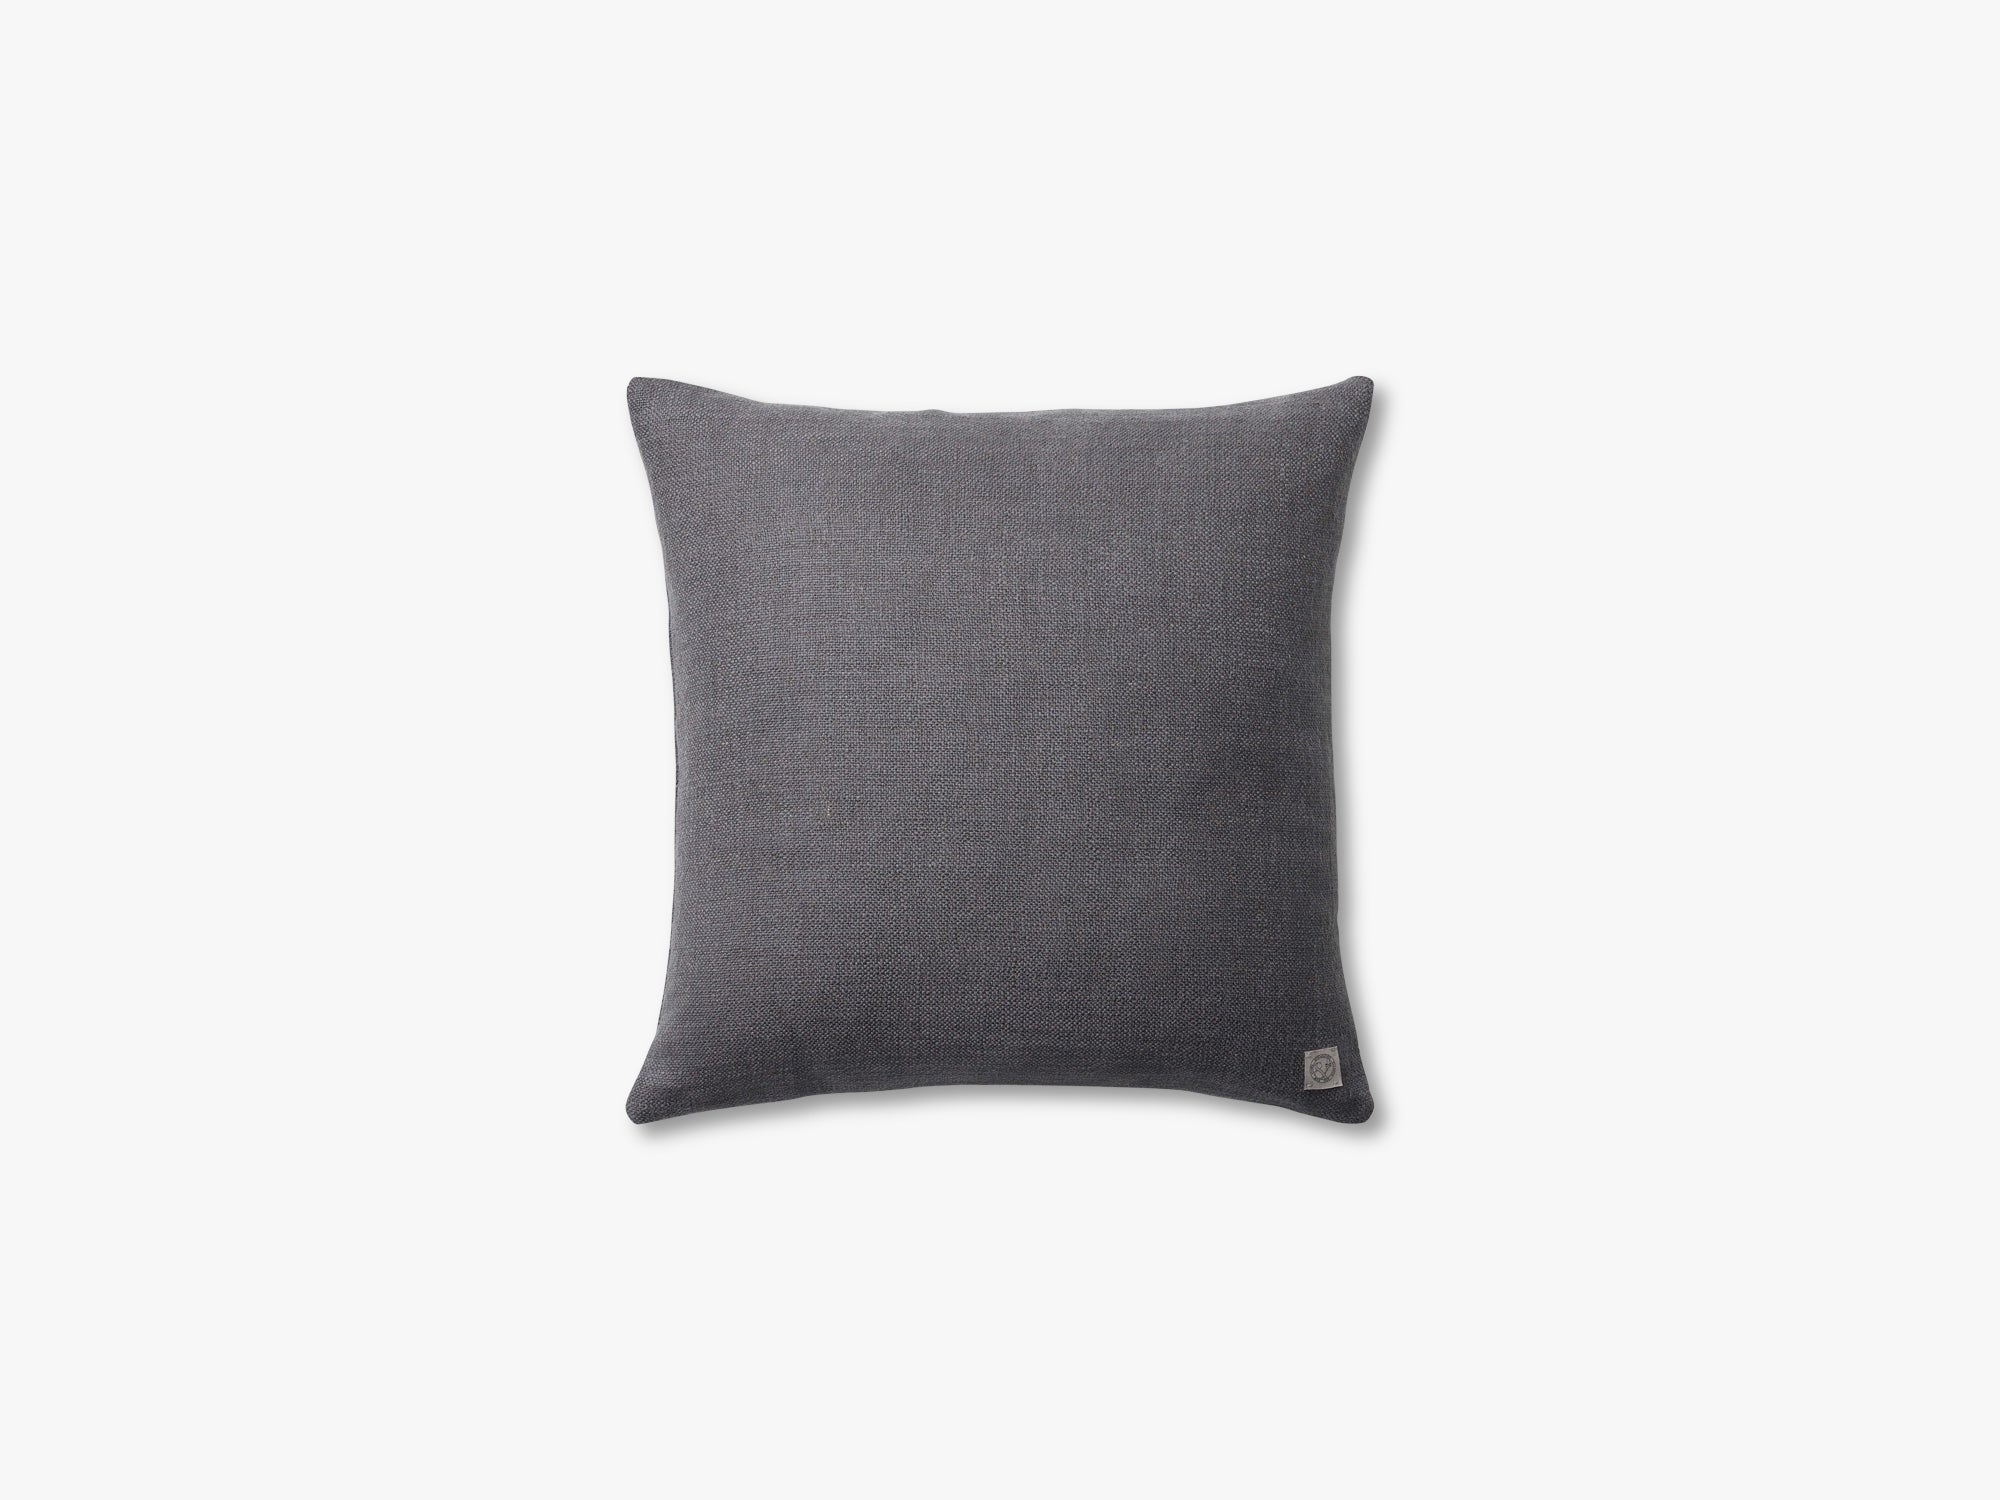 Collect Cushion SC28 - 50x50, Slate/Heavy Linen fra &tradition